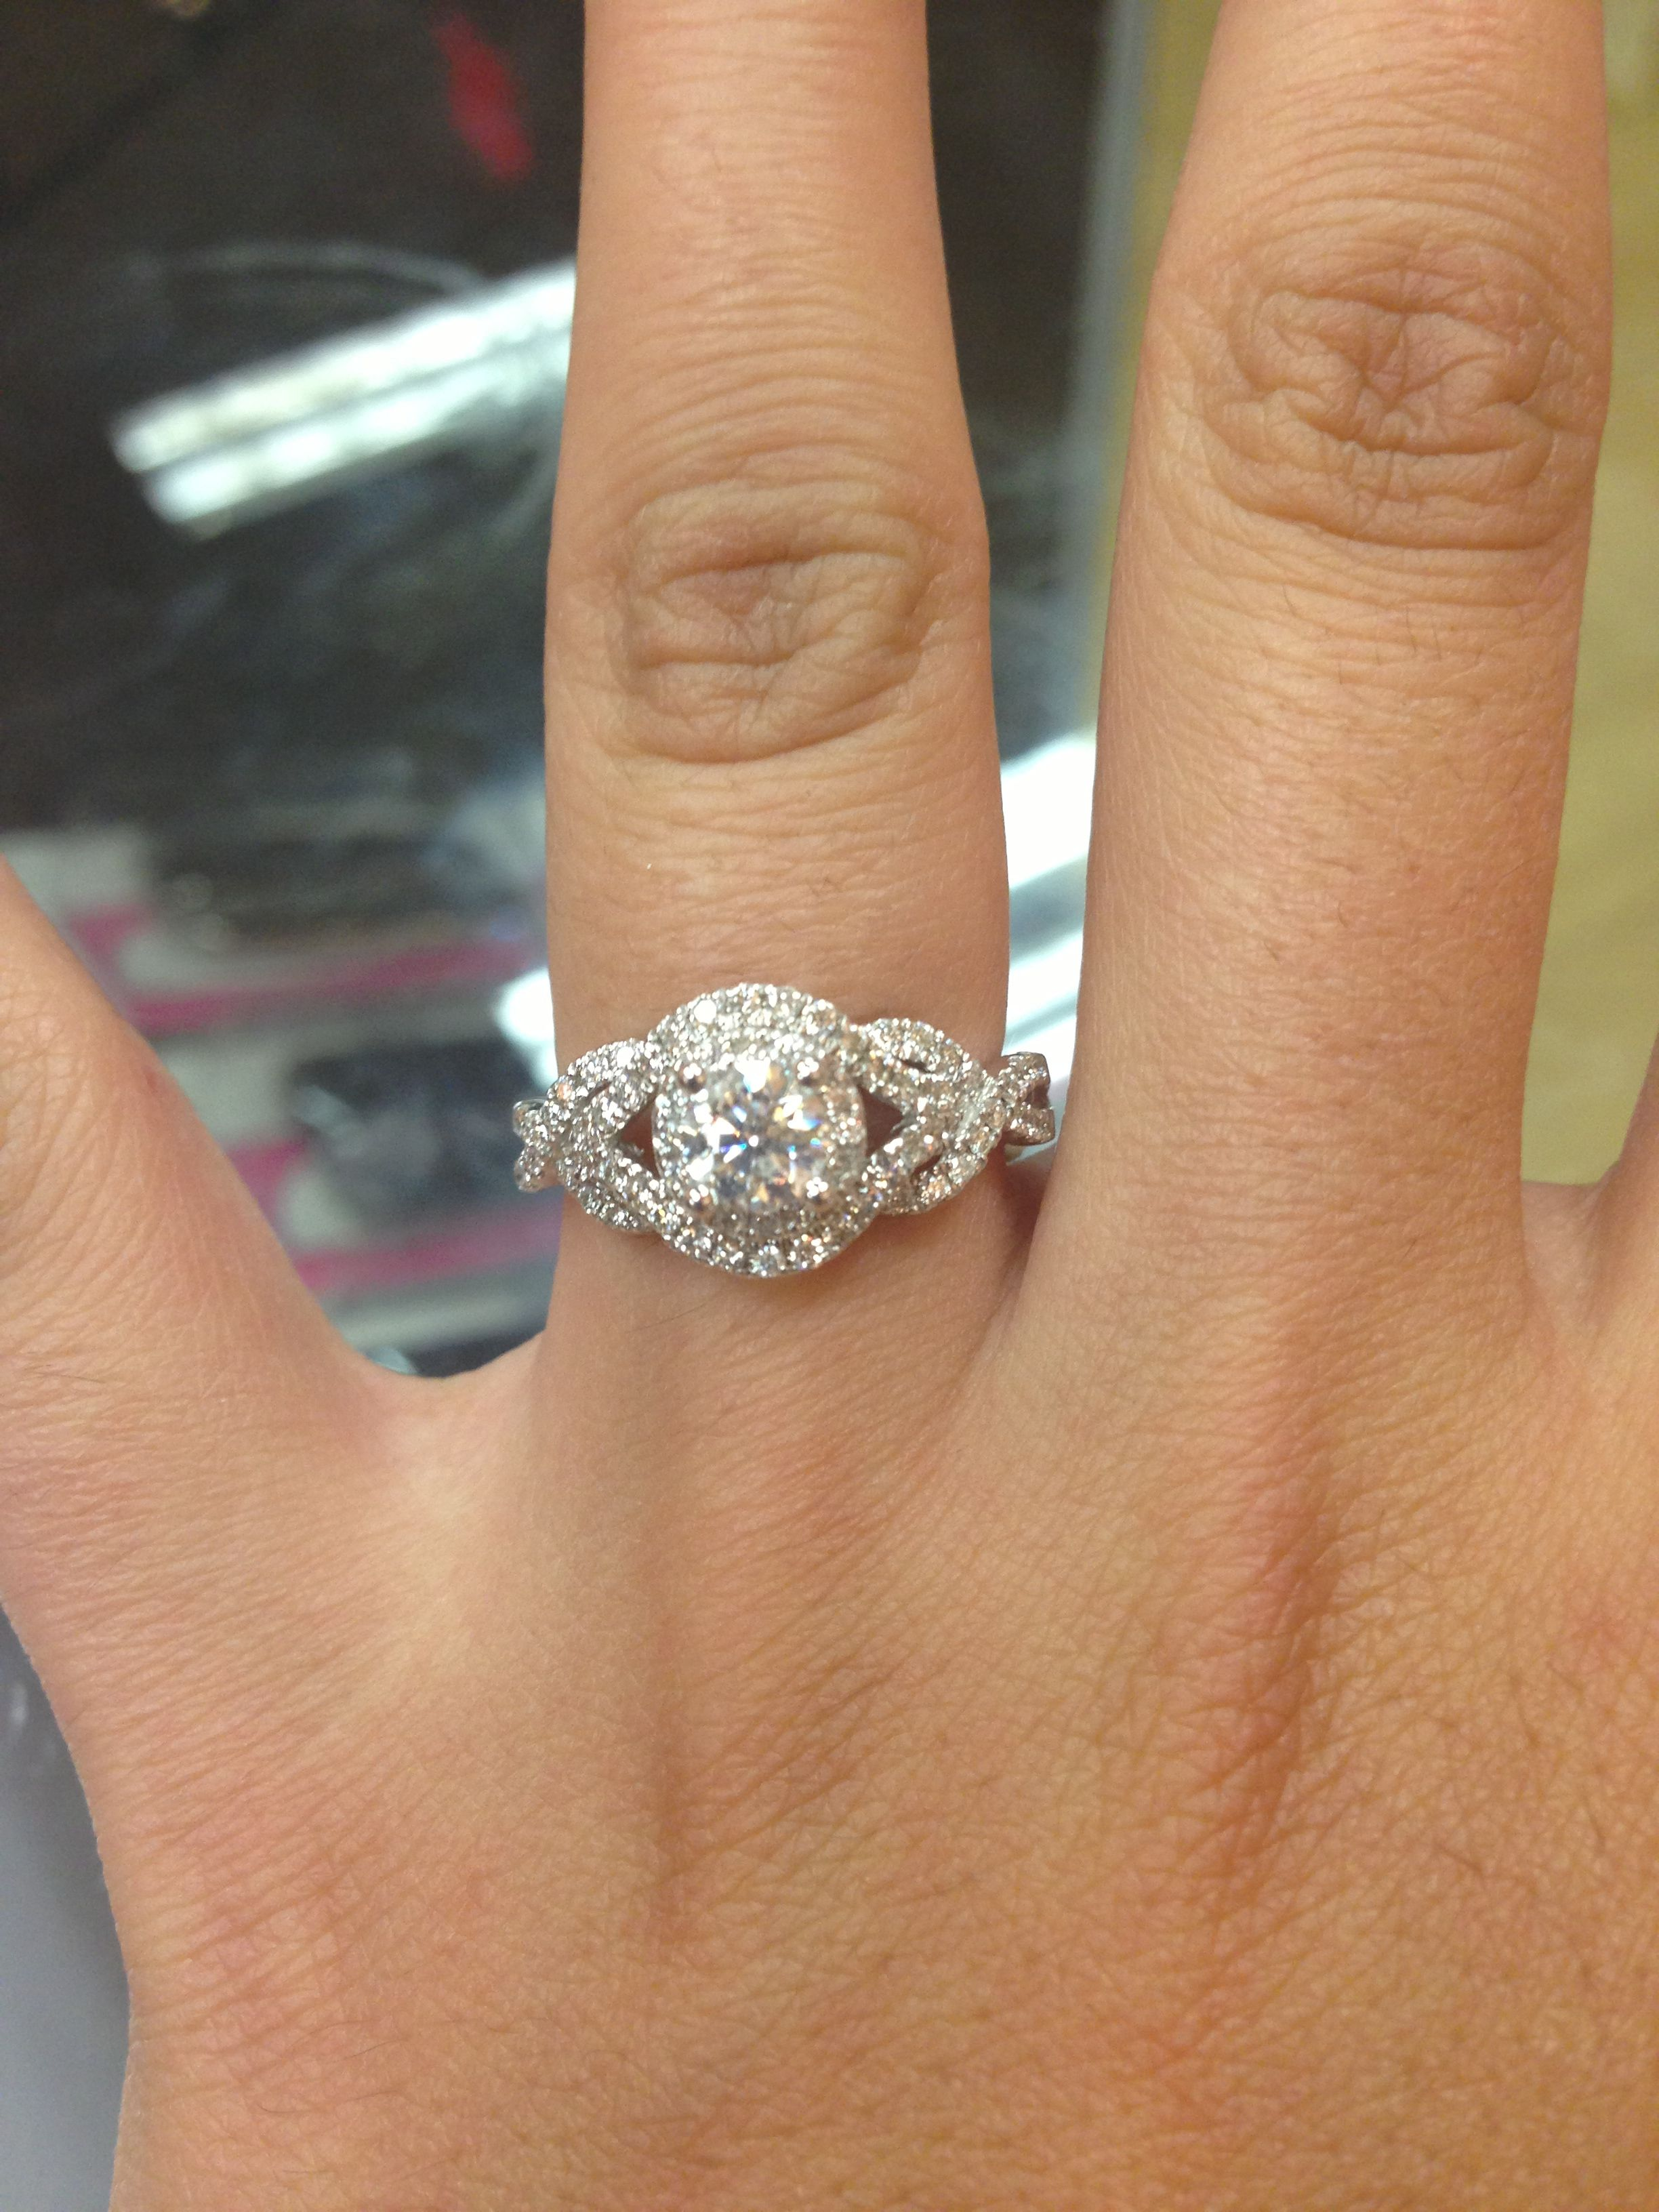 Engagement Ring From Kay Jewelers! I Would Say Yes In A Heartbeat